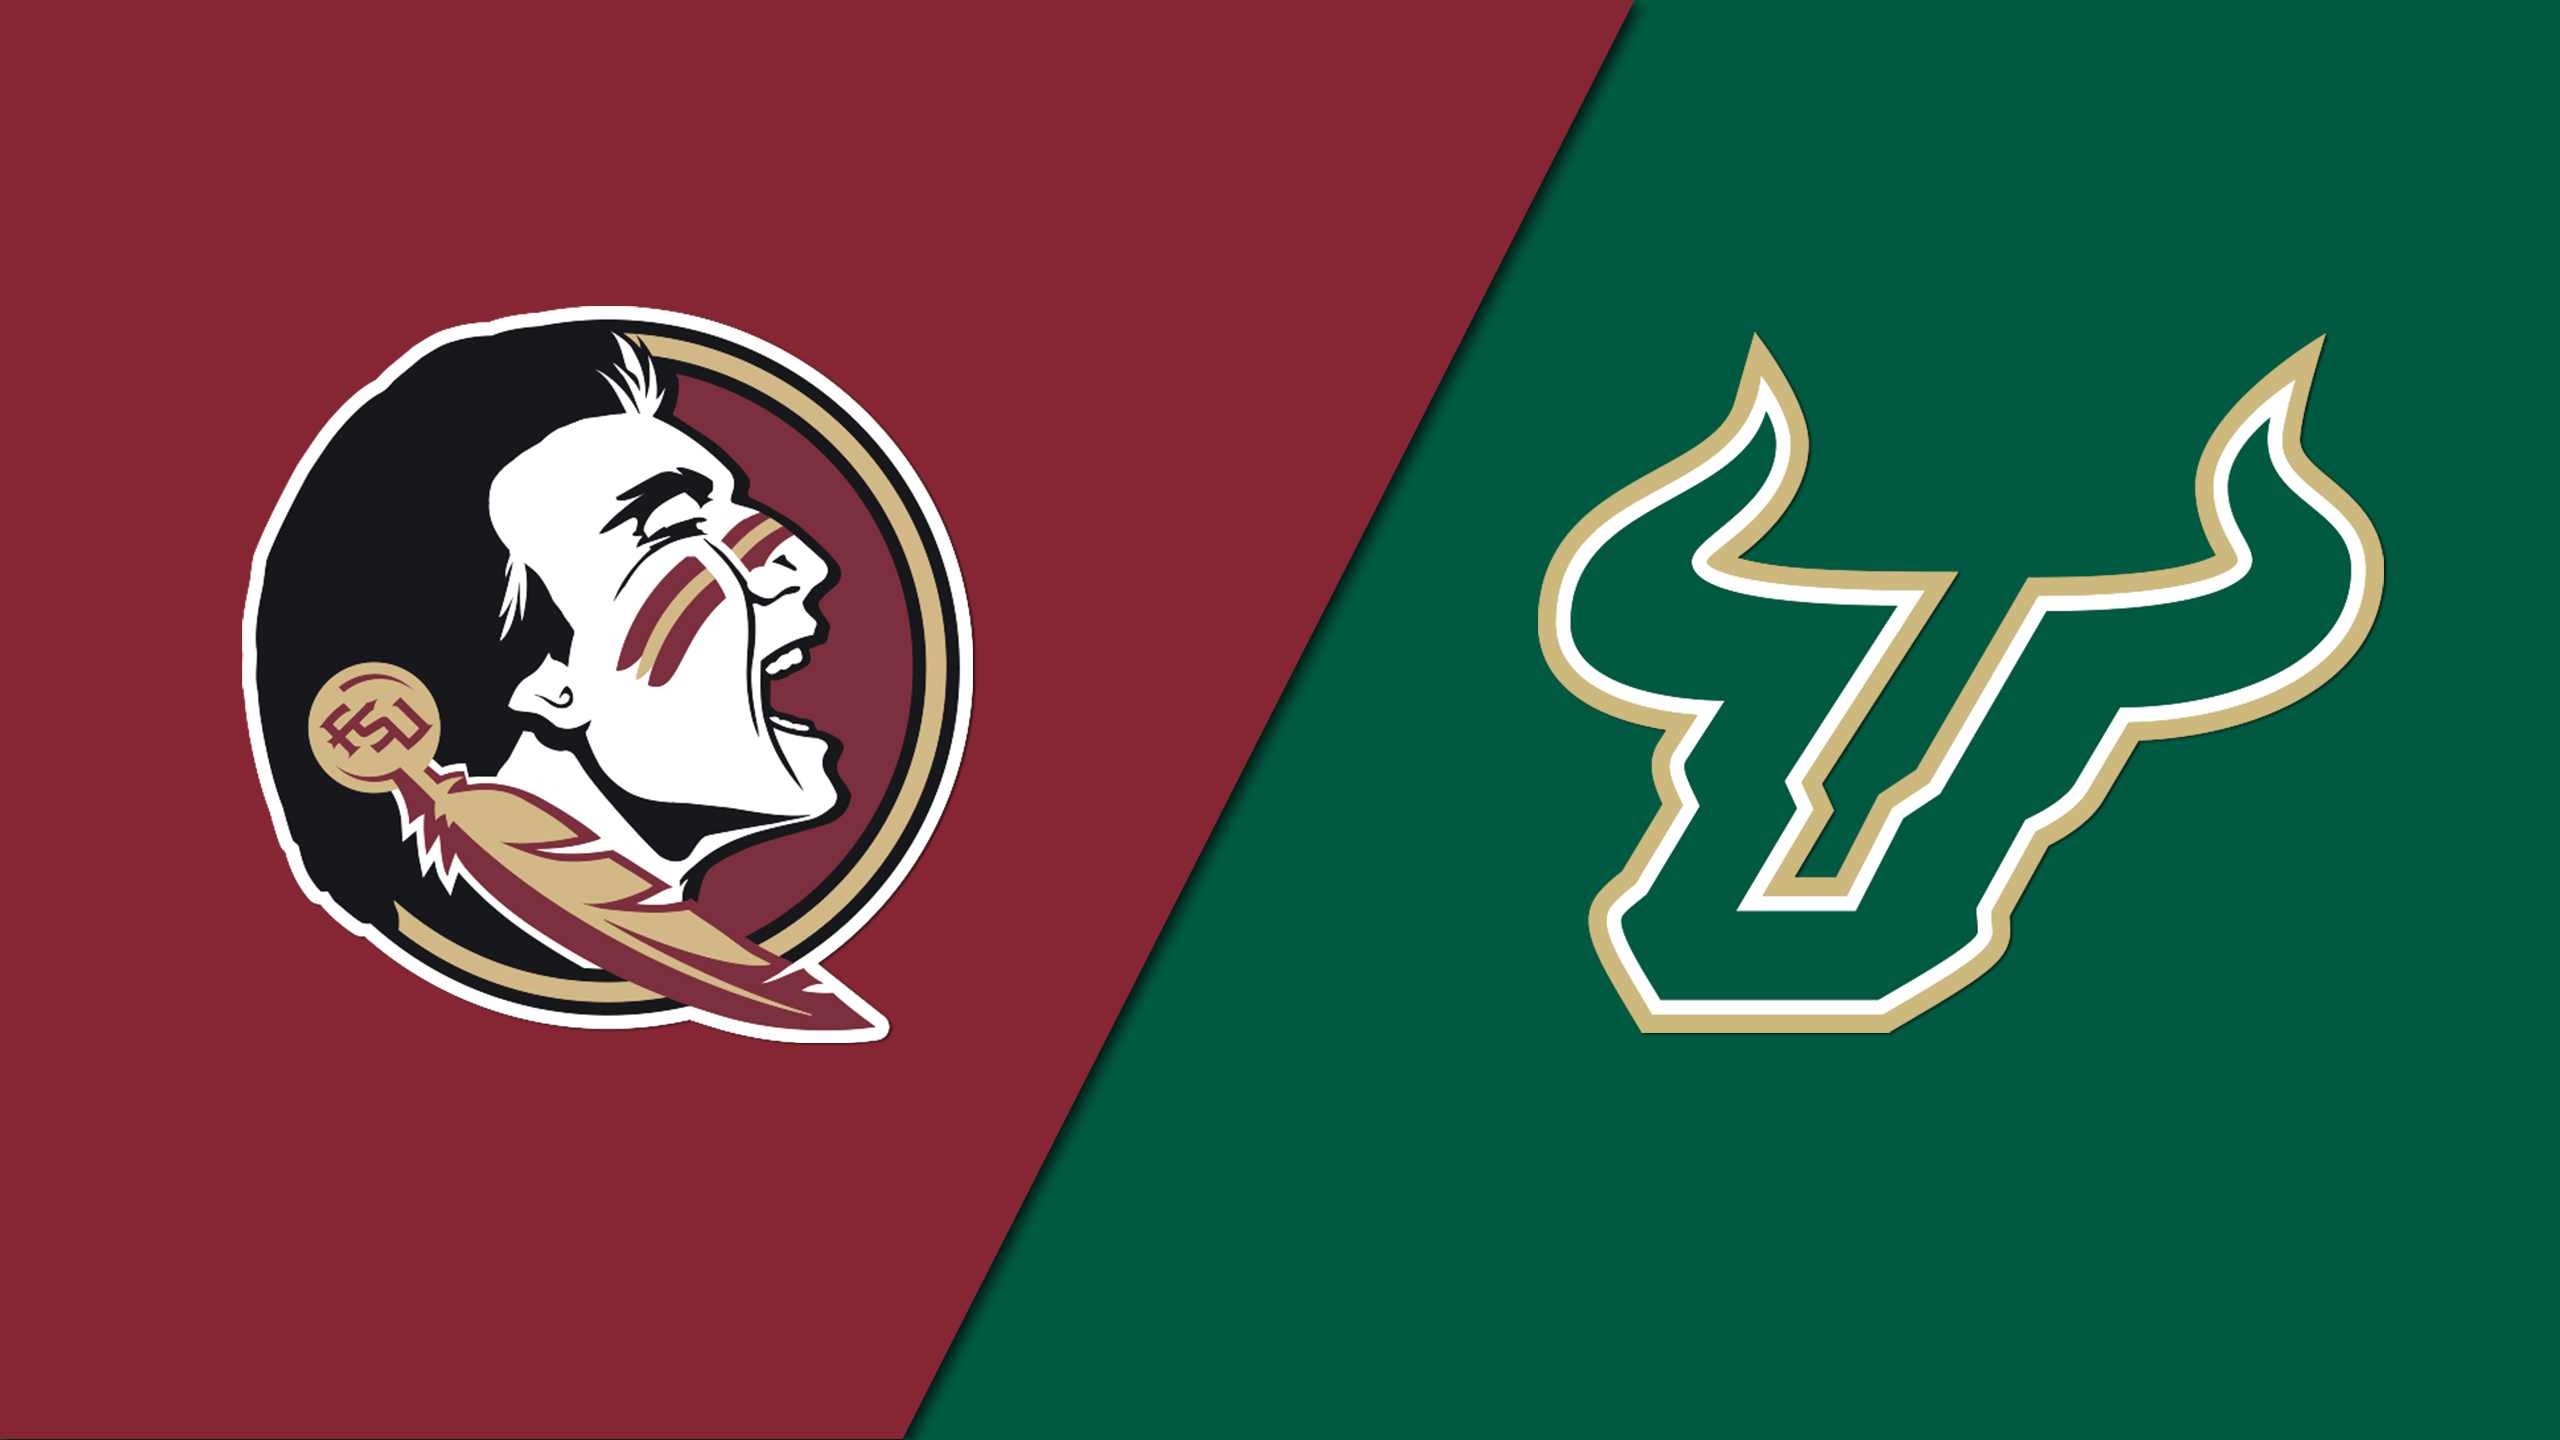 Florida State vs. South Florida (Site 12 / Game 3) (re-air)